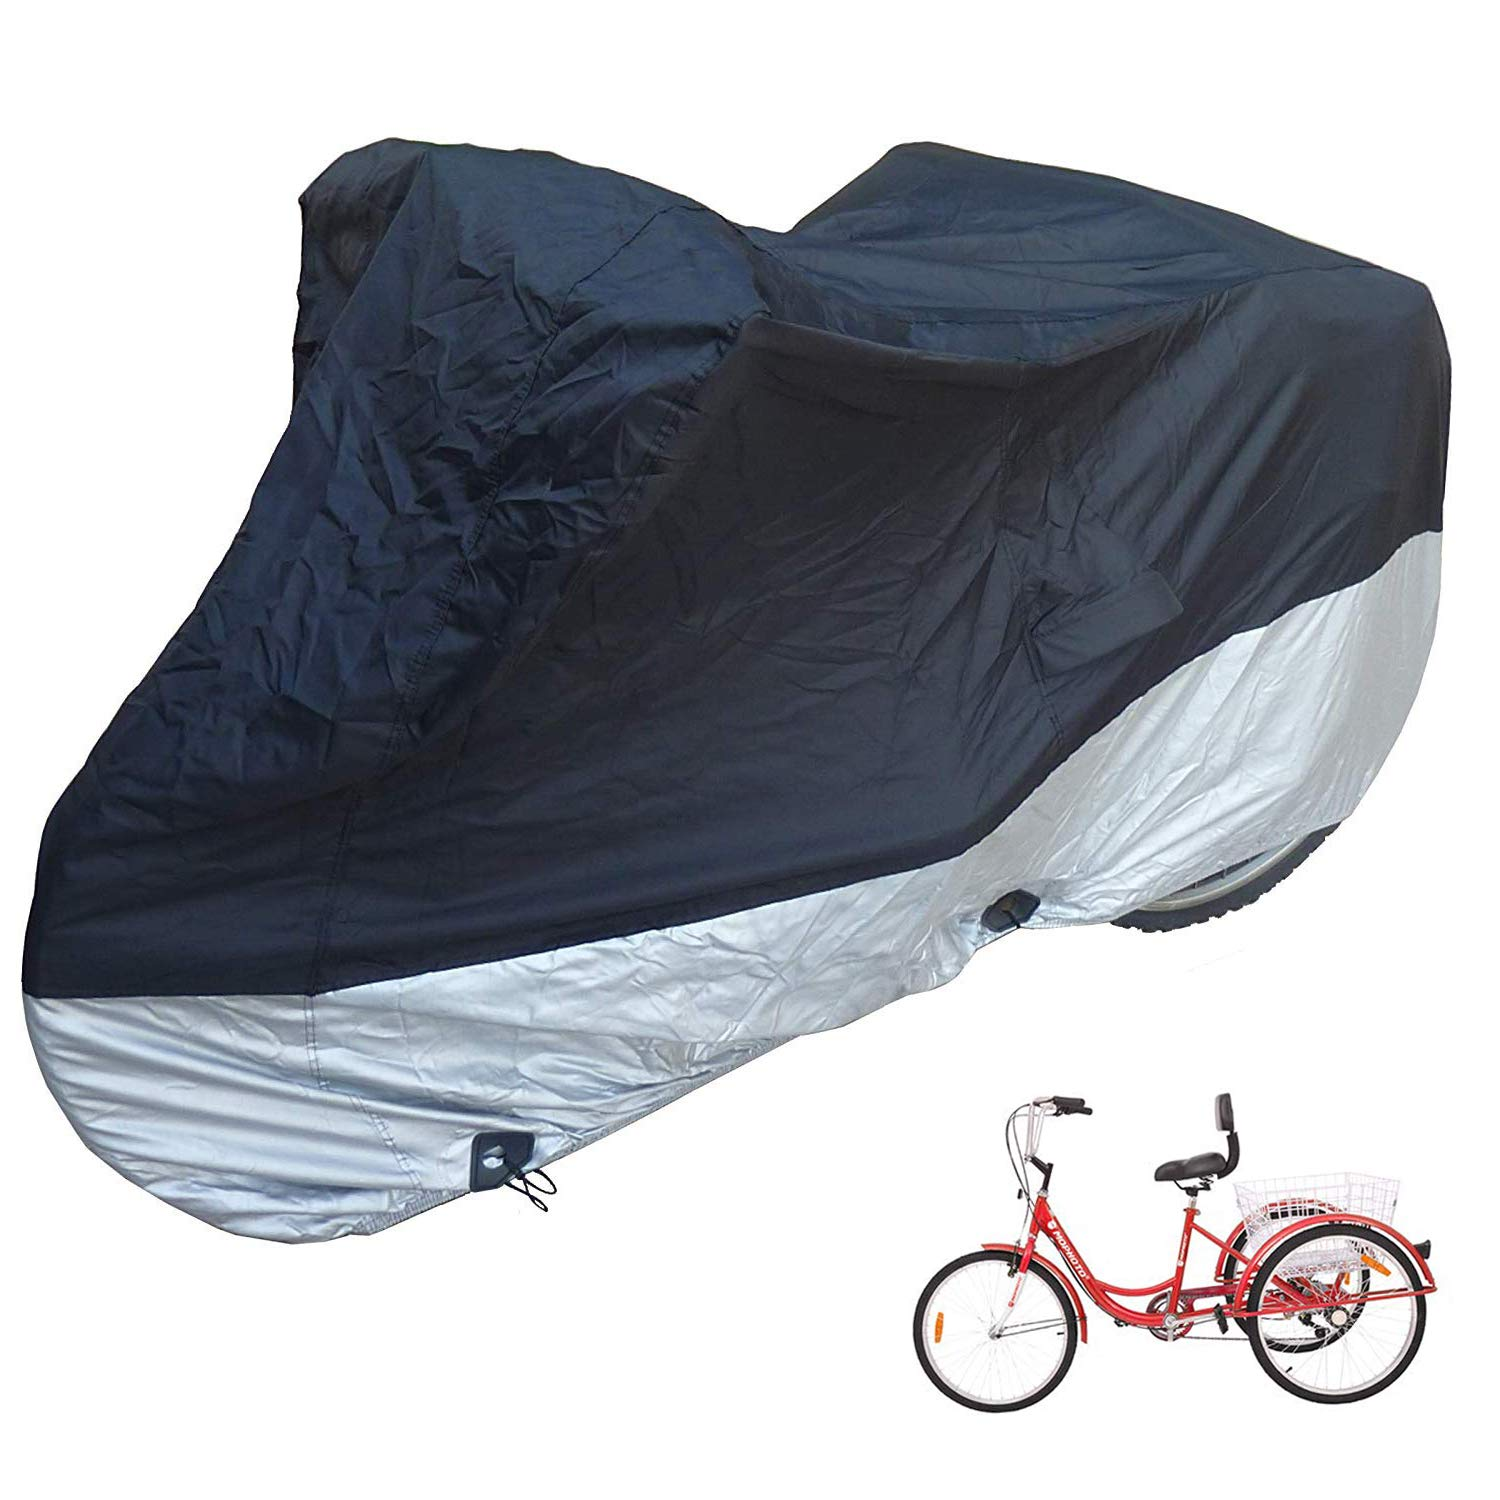 H&ZT Adult Tricycle Cover Bike Cover, Outdoor Bicycle Motocycle Storage Cover, Heavy Duty Ripstop Material, Waterproof & Anti-UV (75'' L x 30'' W x 44'' H) (Black & Silver, 75'' L x 30'' W x 44'' H) by H&ZT